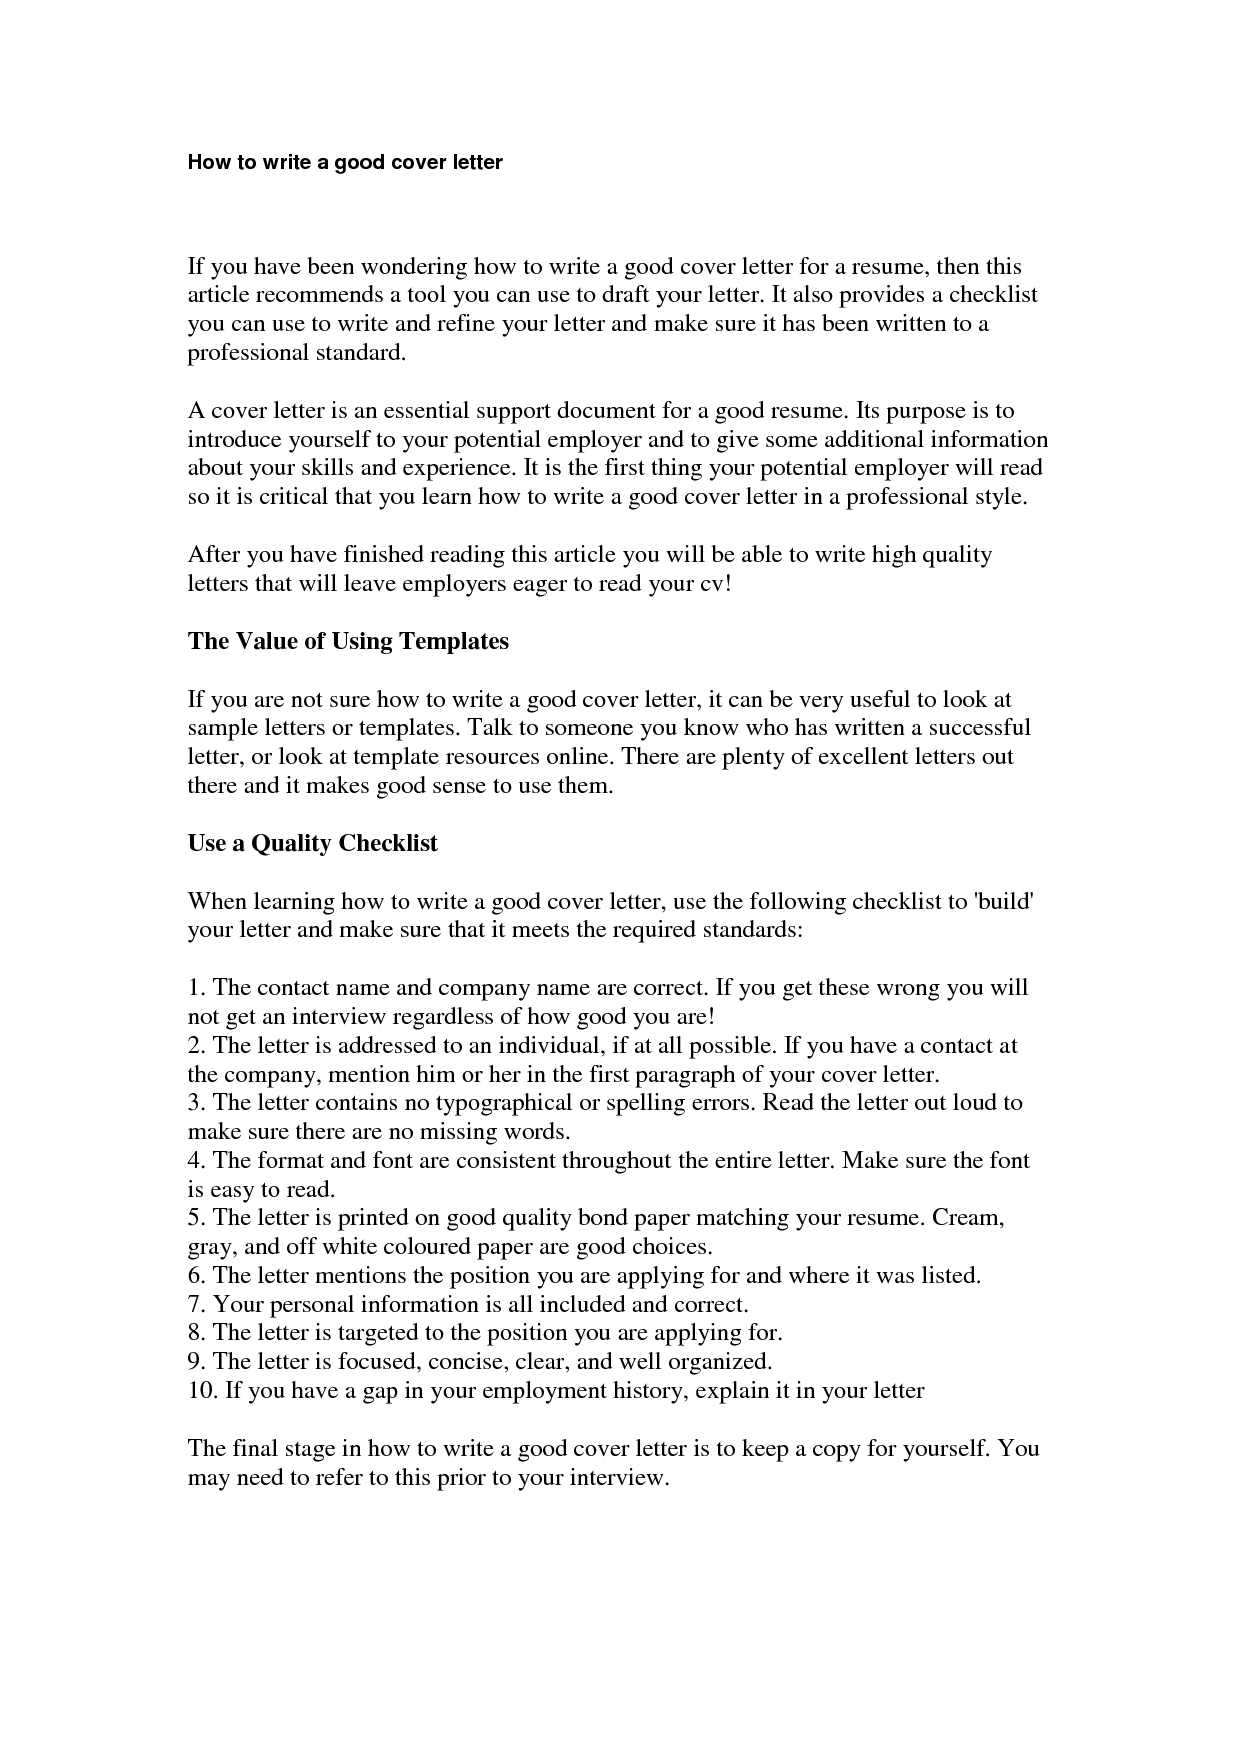 reddit cover letter template April.onthemarch.co